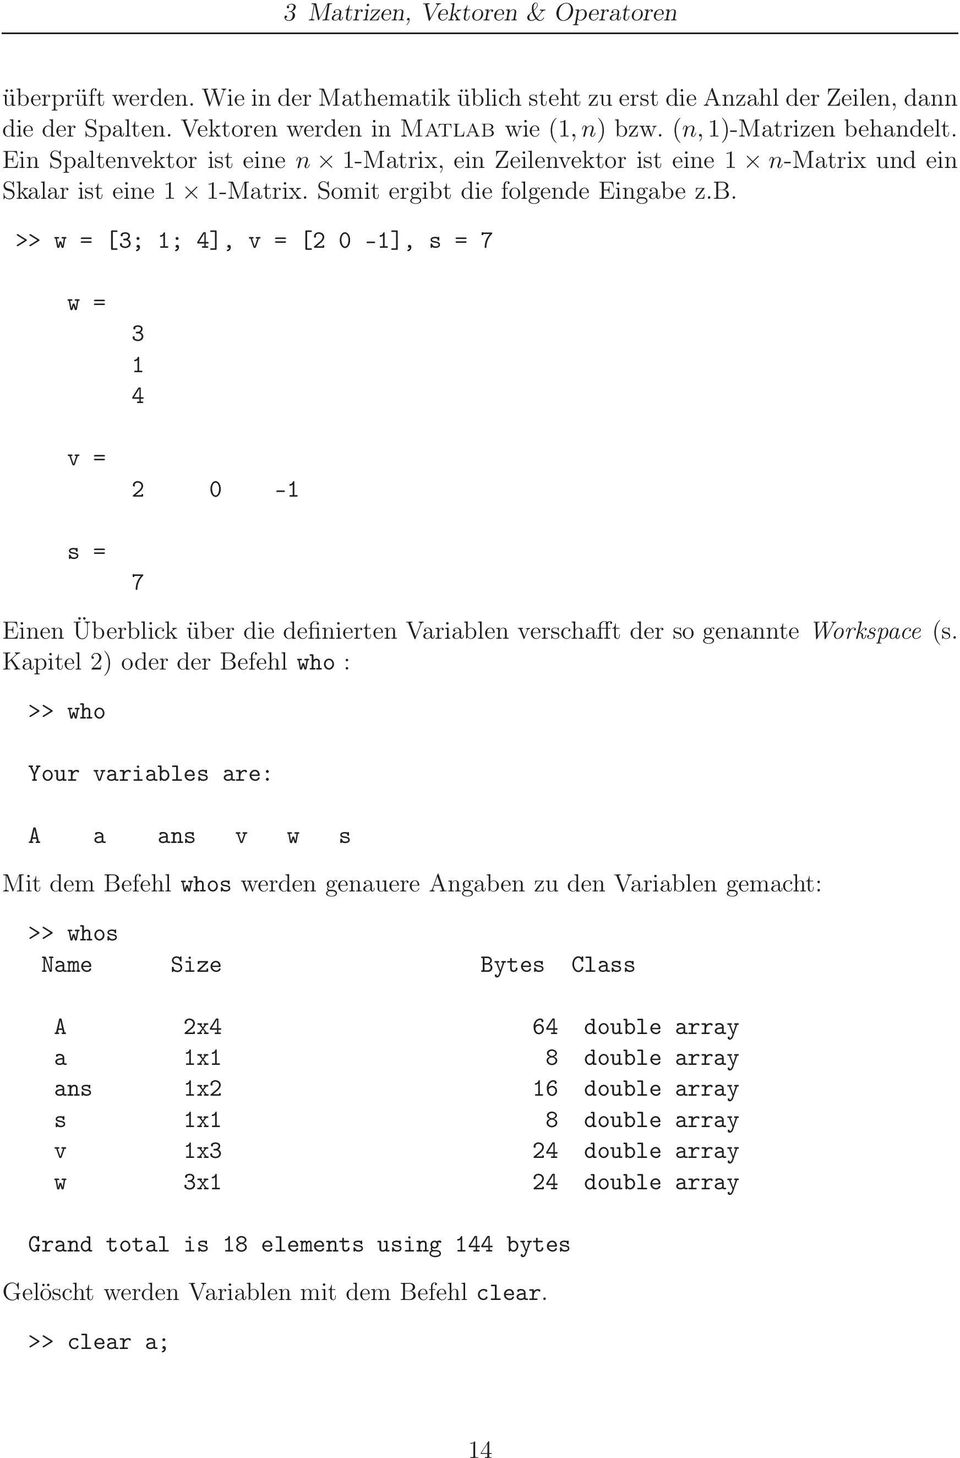 Kapitel 2) oder der Befehl who : >> who Your variables are: A a ans v w s Mit dem Befehl whos werden genauere Angaben zu den Variablen gemacht: >> whos Name Size Bytes Class A 2x4 64 double array a